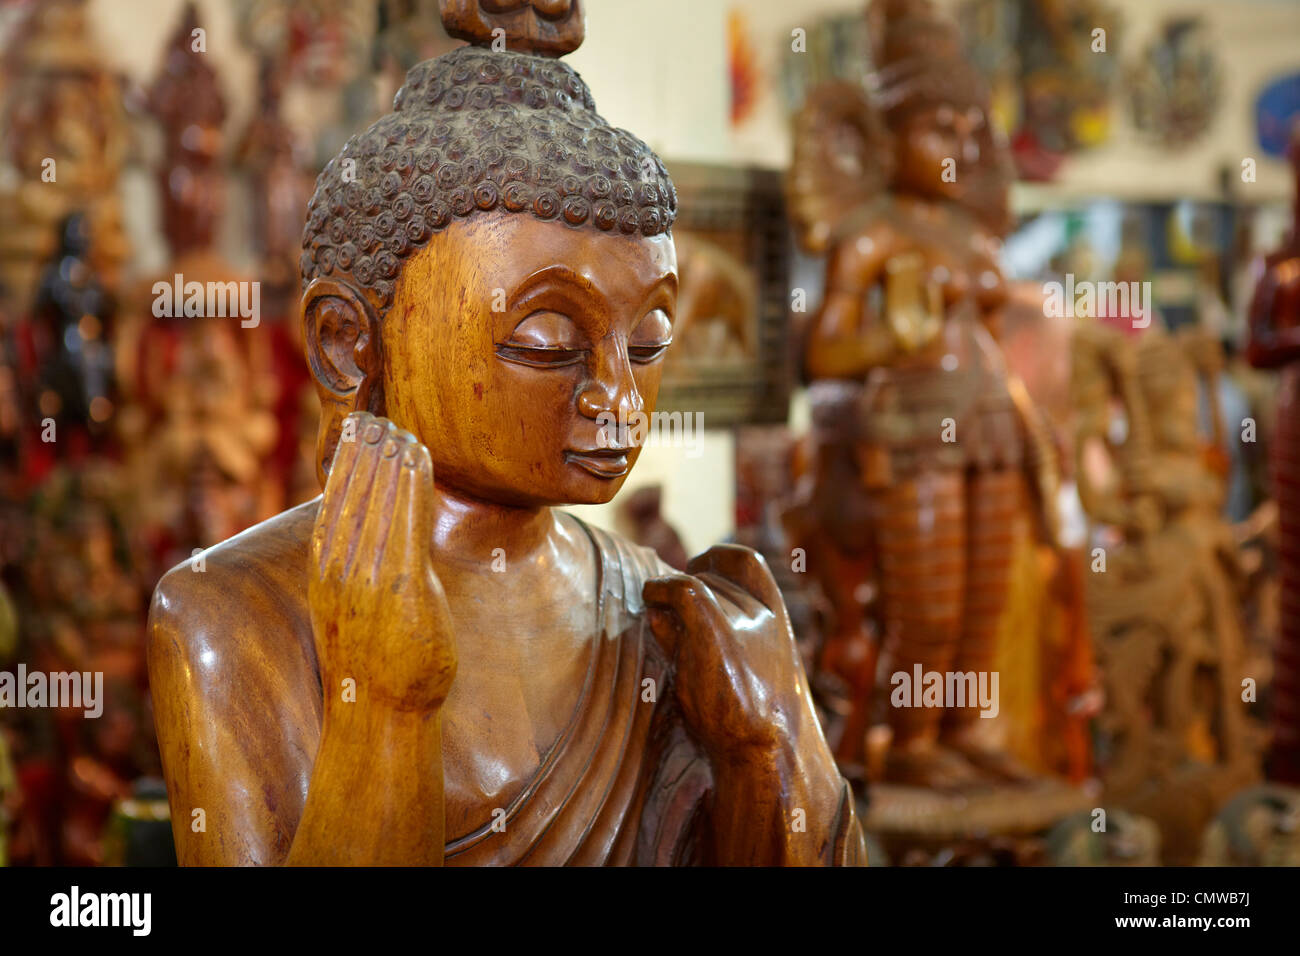 Sri Lanka - traditional wood carving, shop with wooden souvenirs, detail of buddha statue - Stock Image